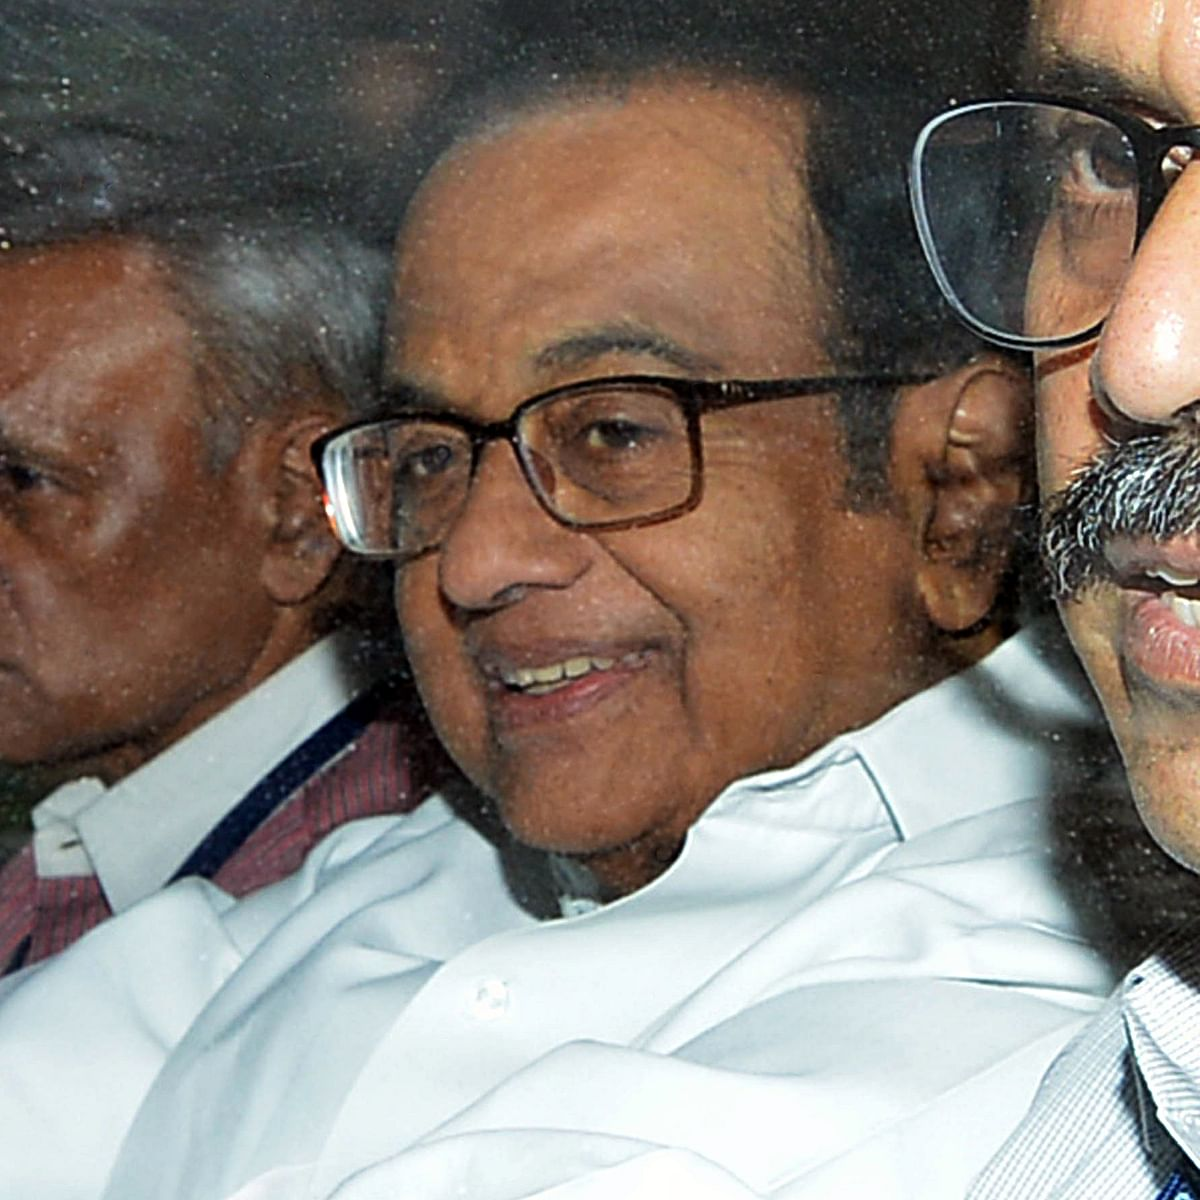 Latest News! INX Media Case: Special CBI Court sends Chidambaram to CBI custody till August 26